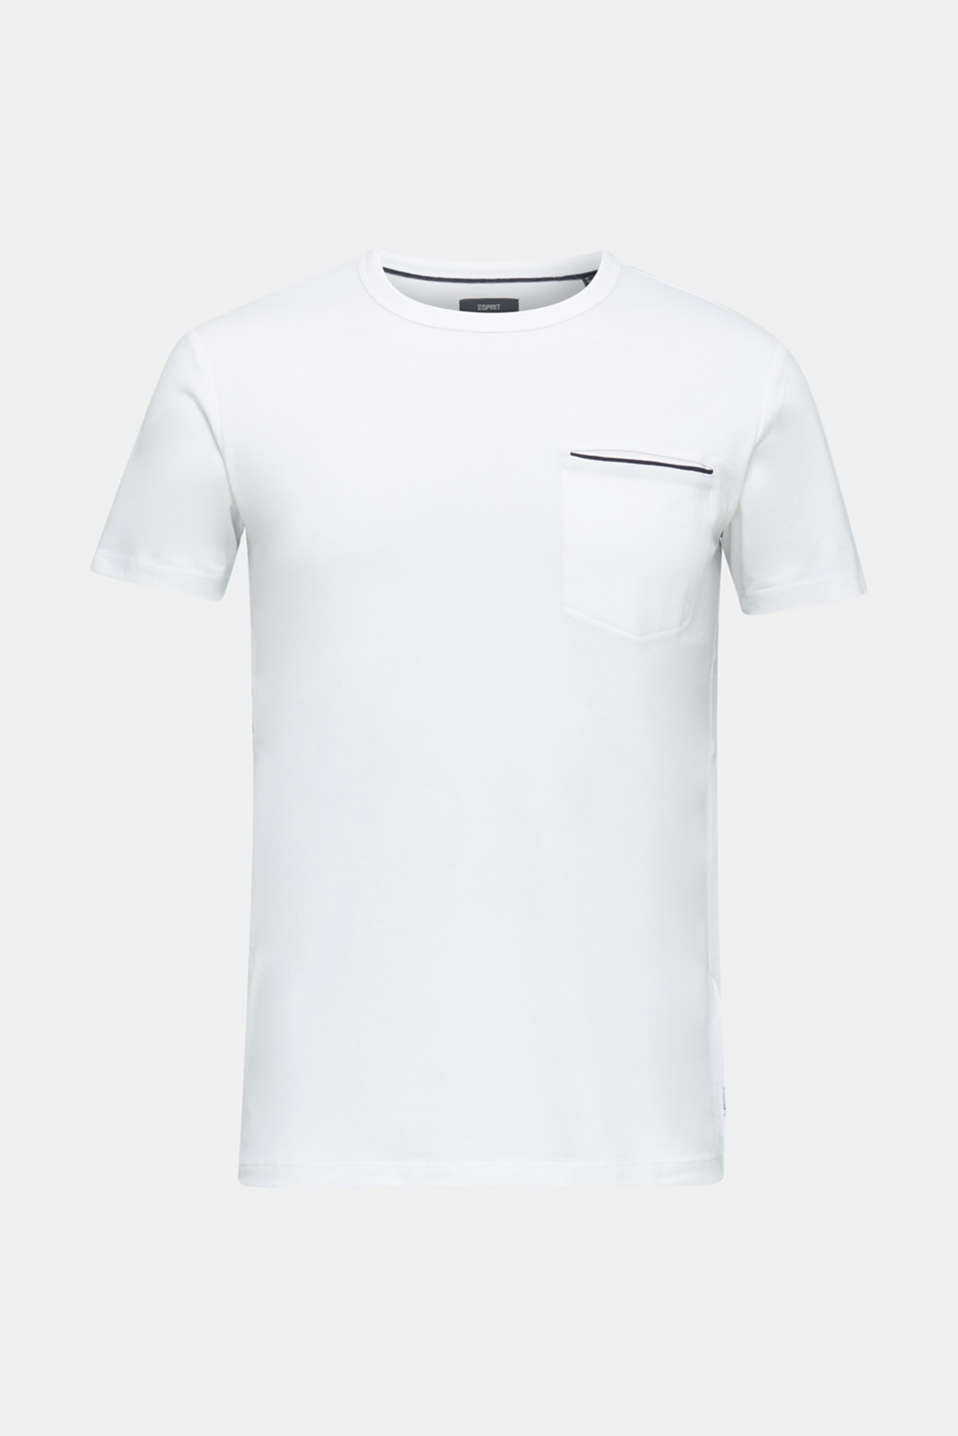 Jersey T-shirt with a pocket and COOLMAX®, WHITE, detail image number 7